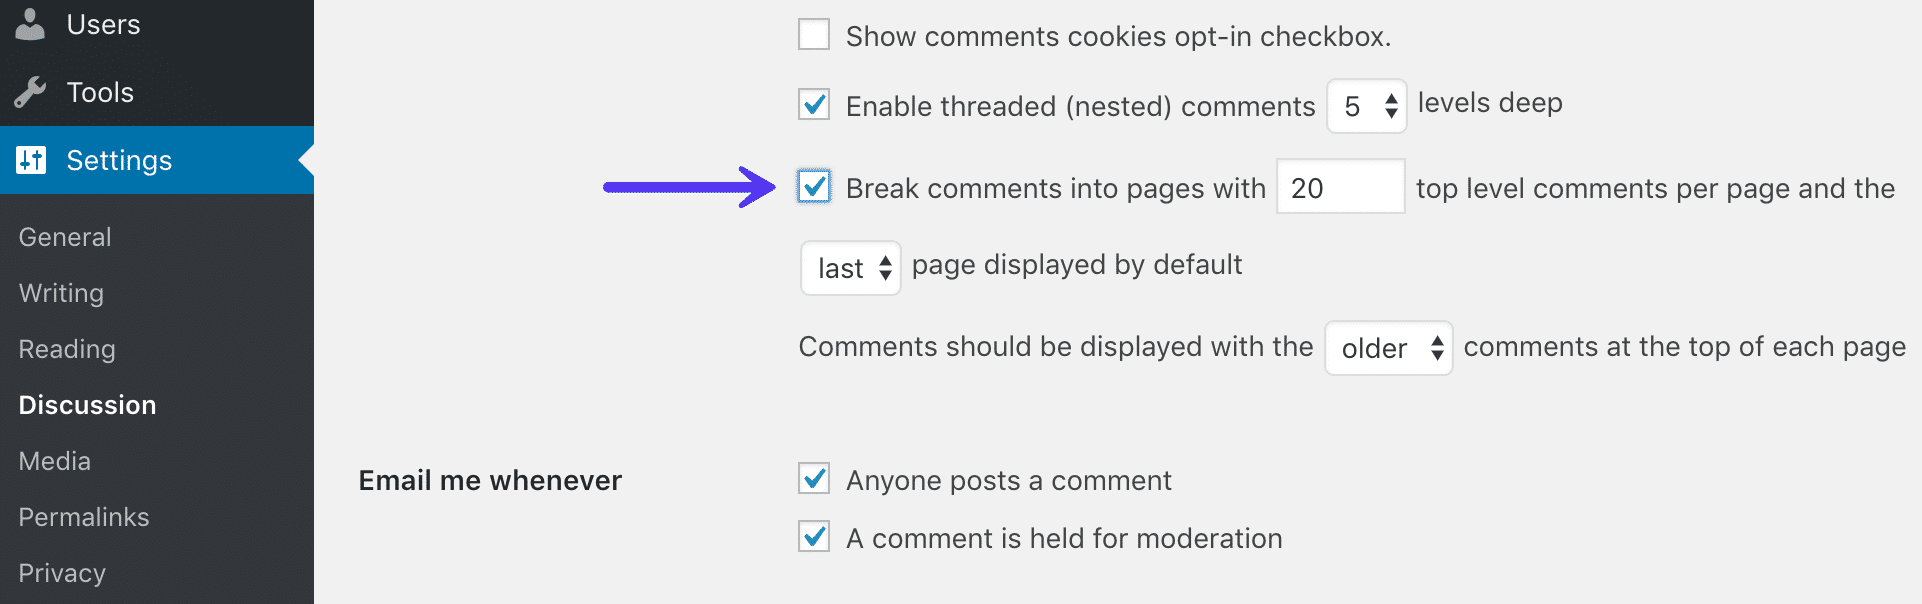 Break comments into pages